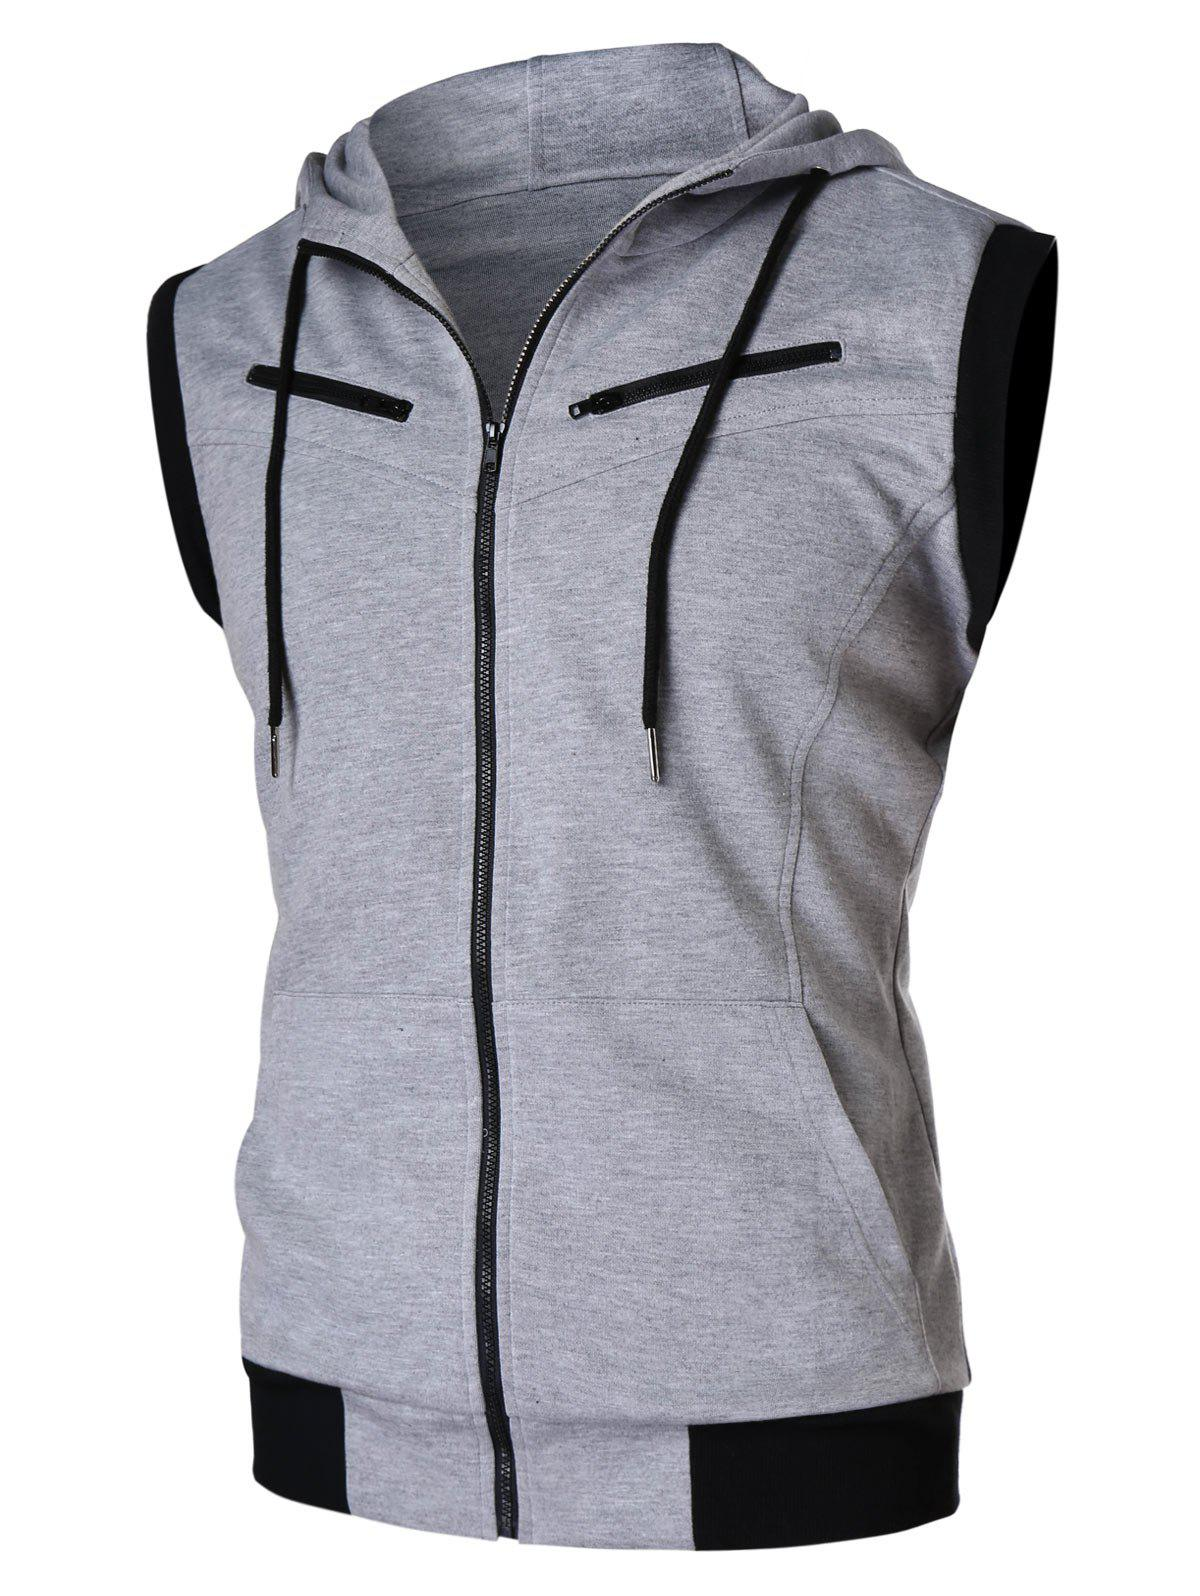 Unique Zipper Sleeveless Hooded Tank Top